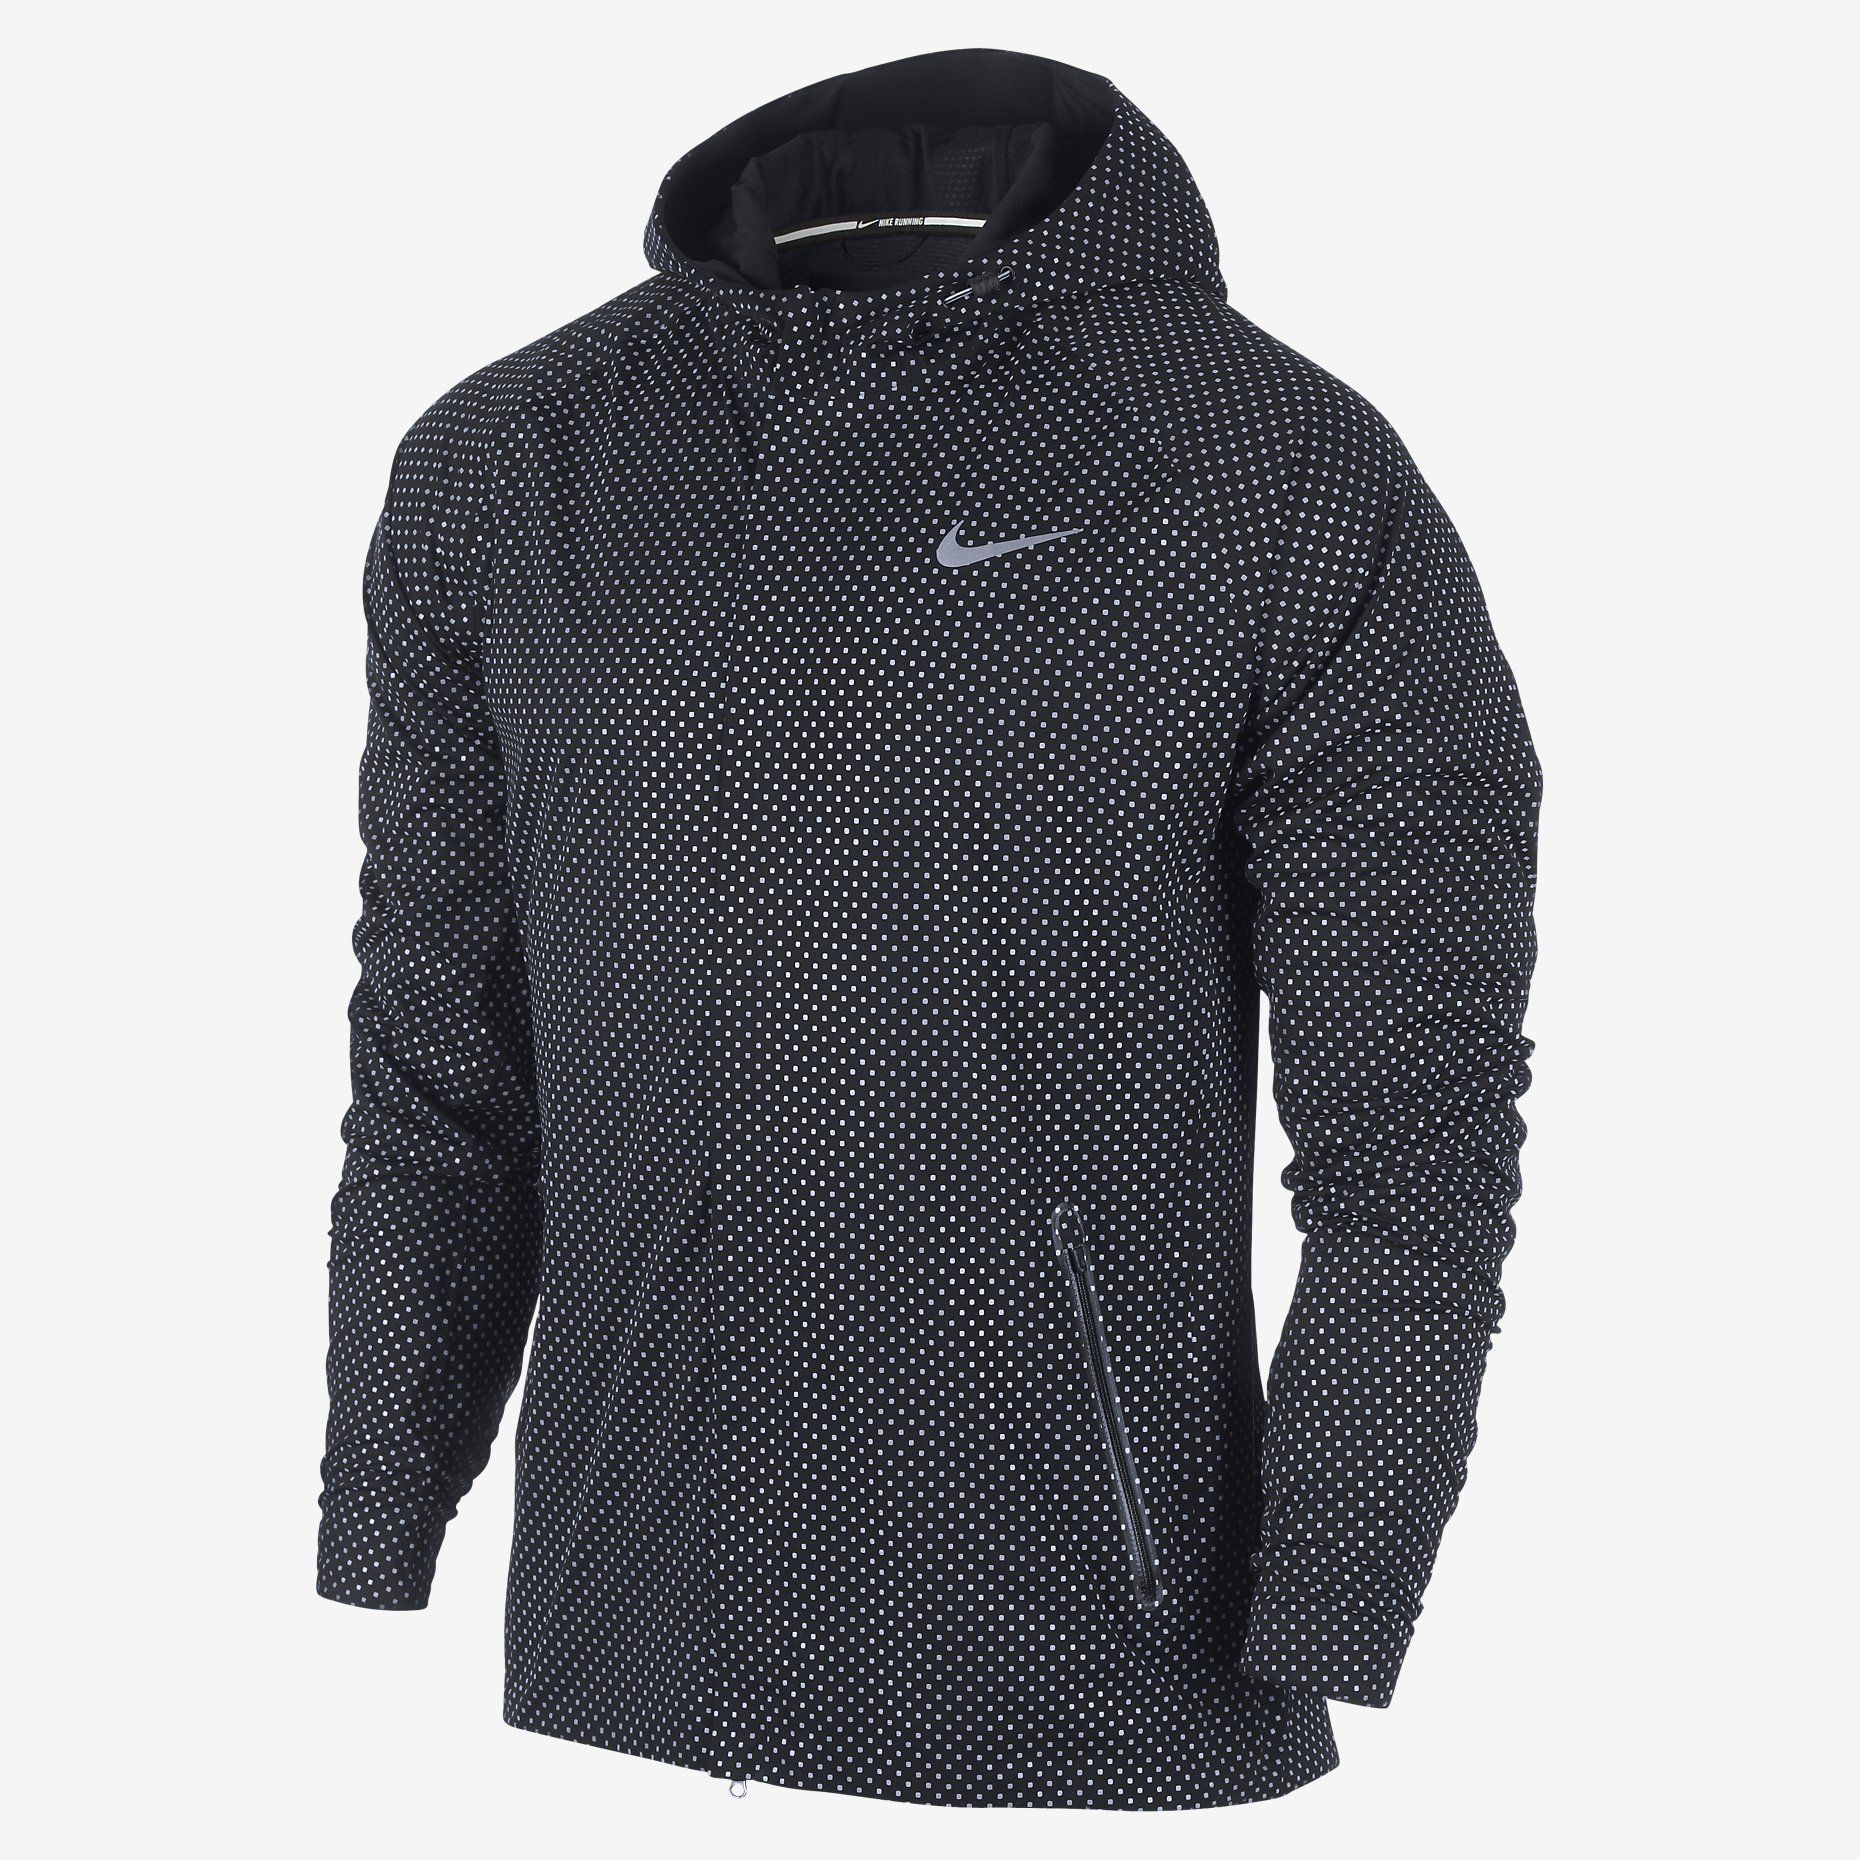 231117b66c69 Nike Shield Flash Max Men s Running Jacket. Nike Store